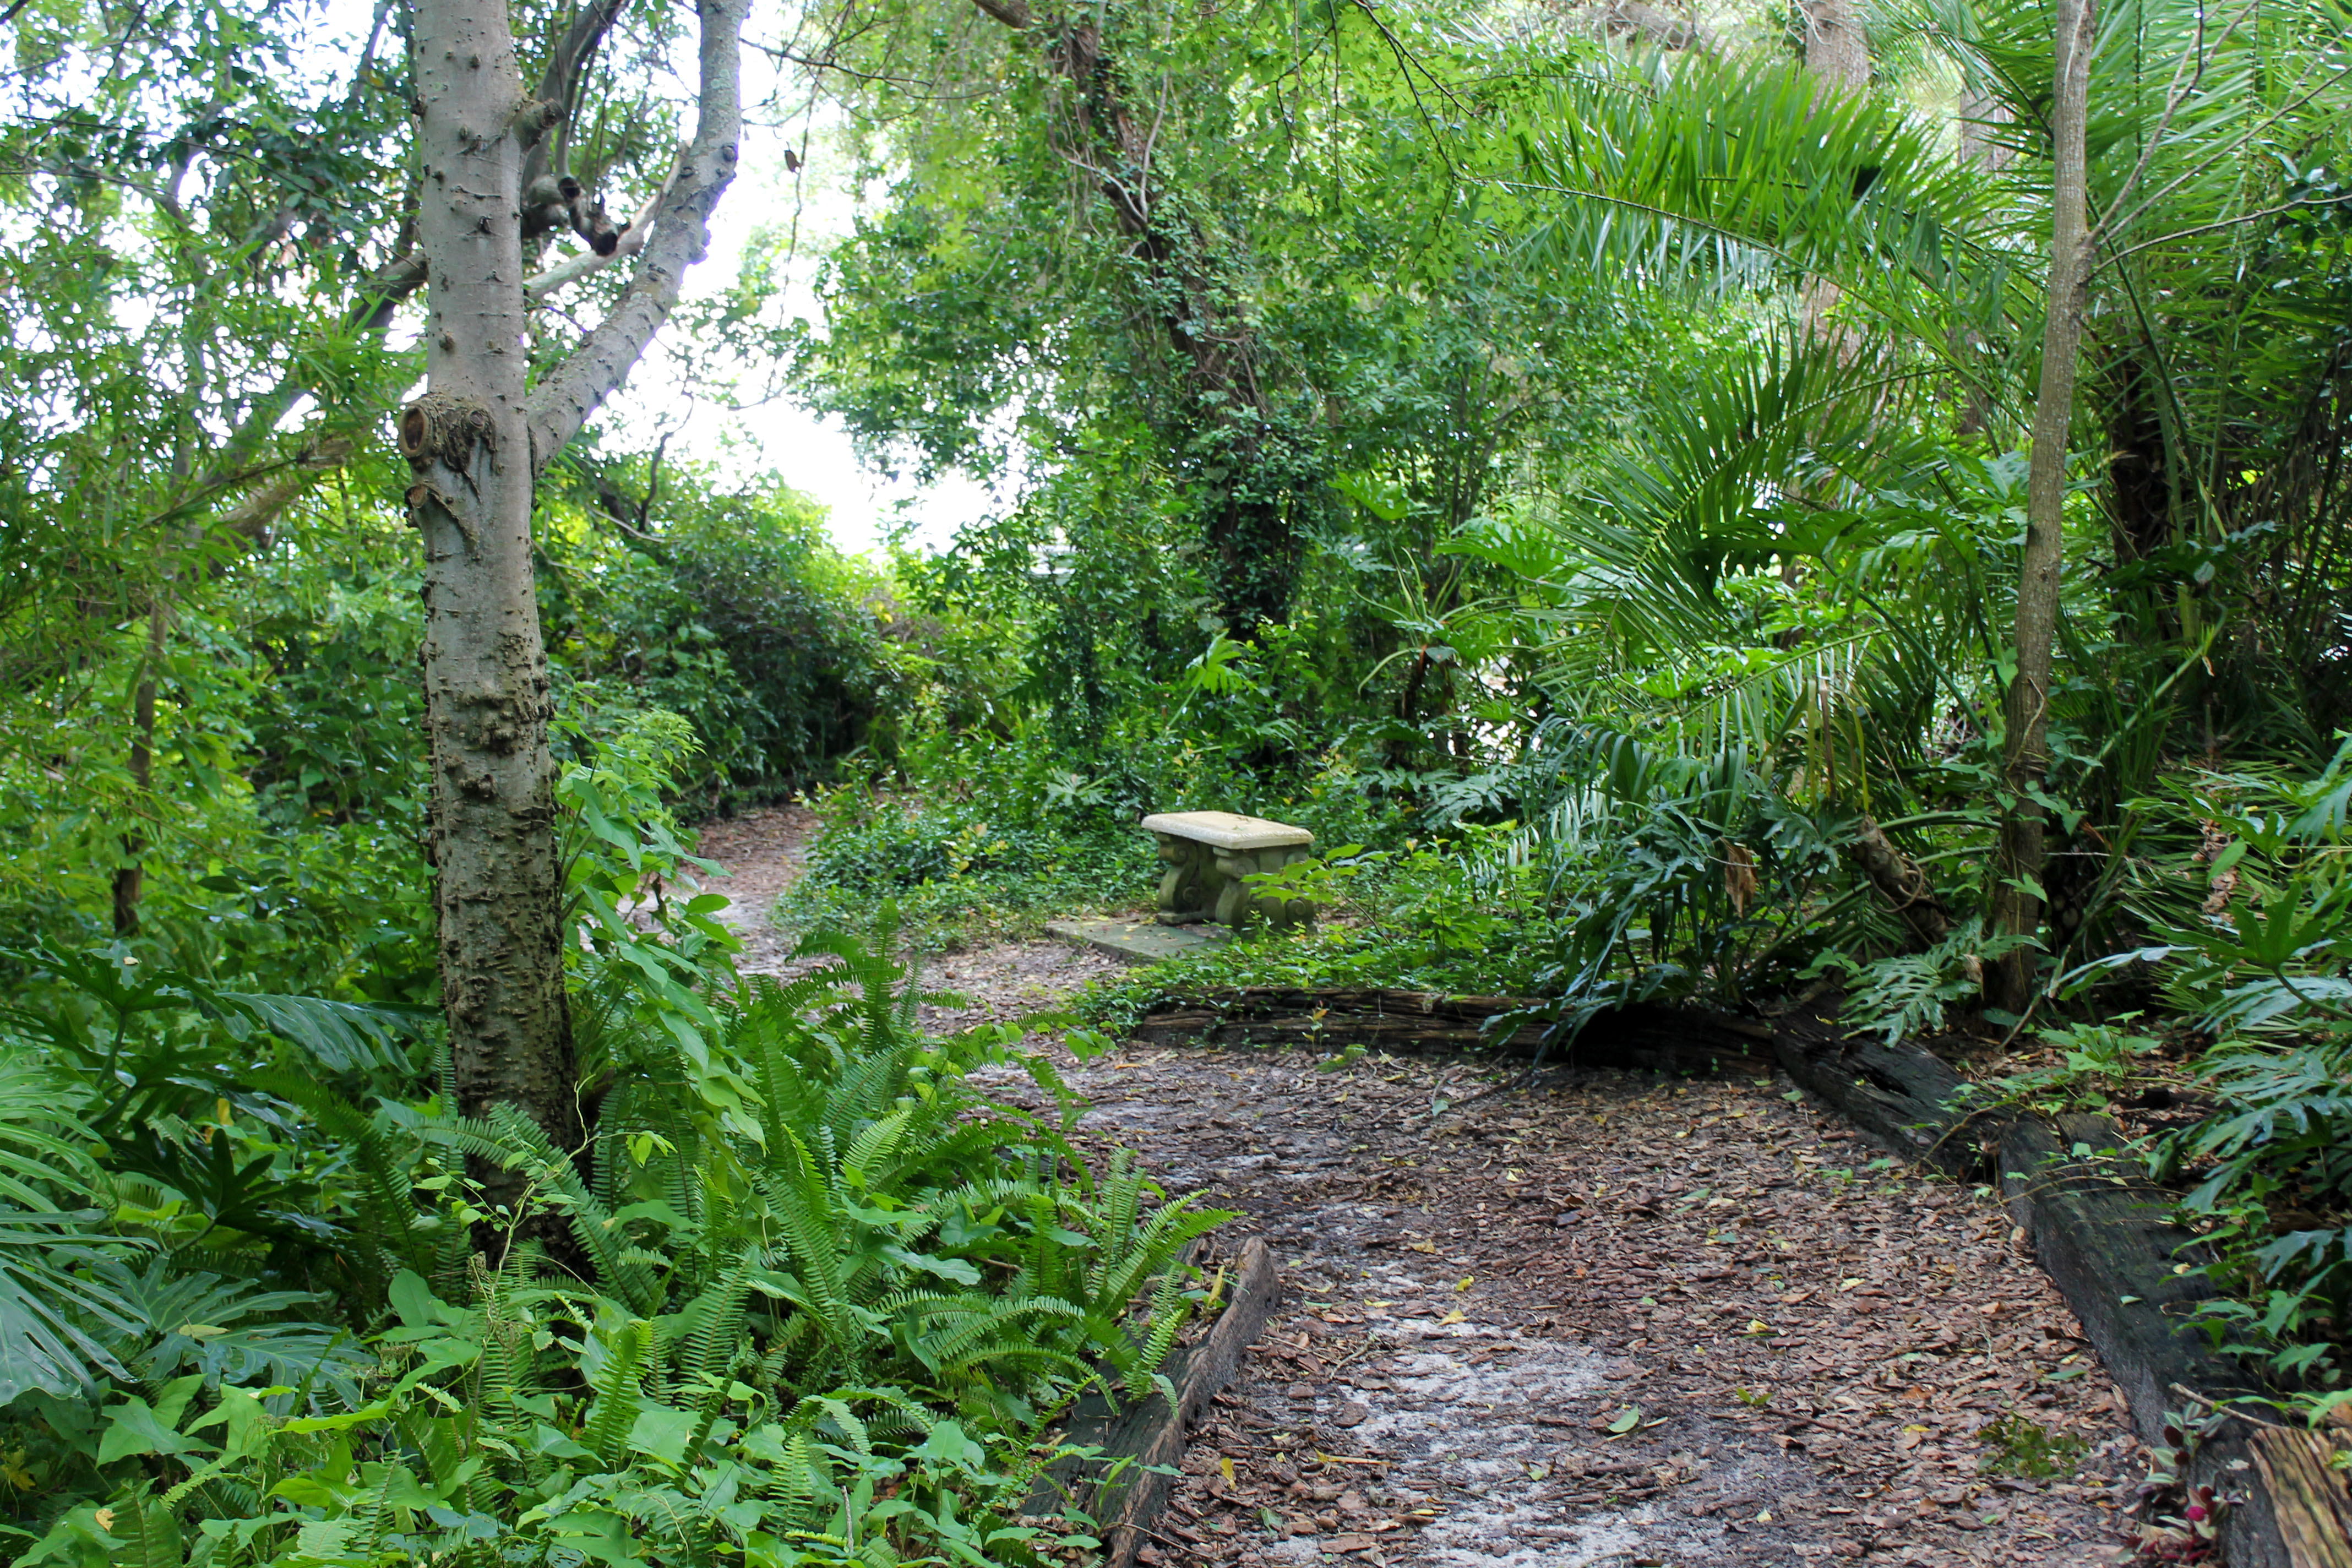 A winding path through Nature Park that has a concrete bench along the path part-way through